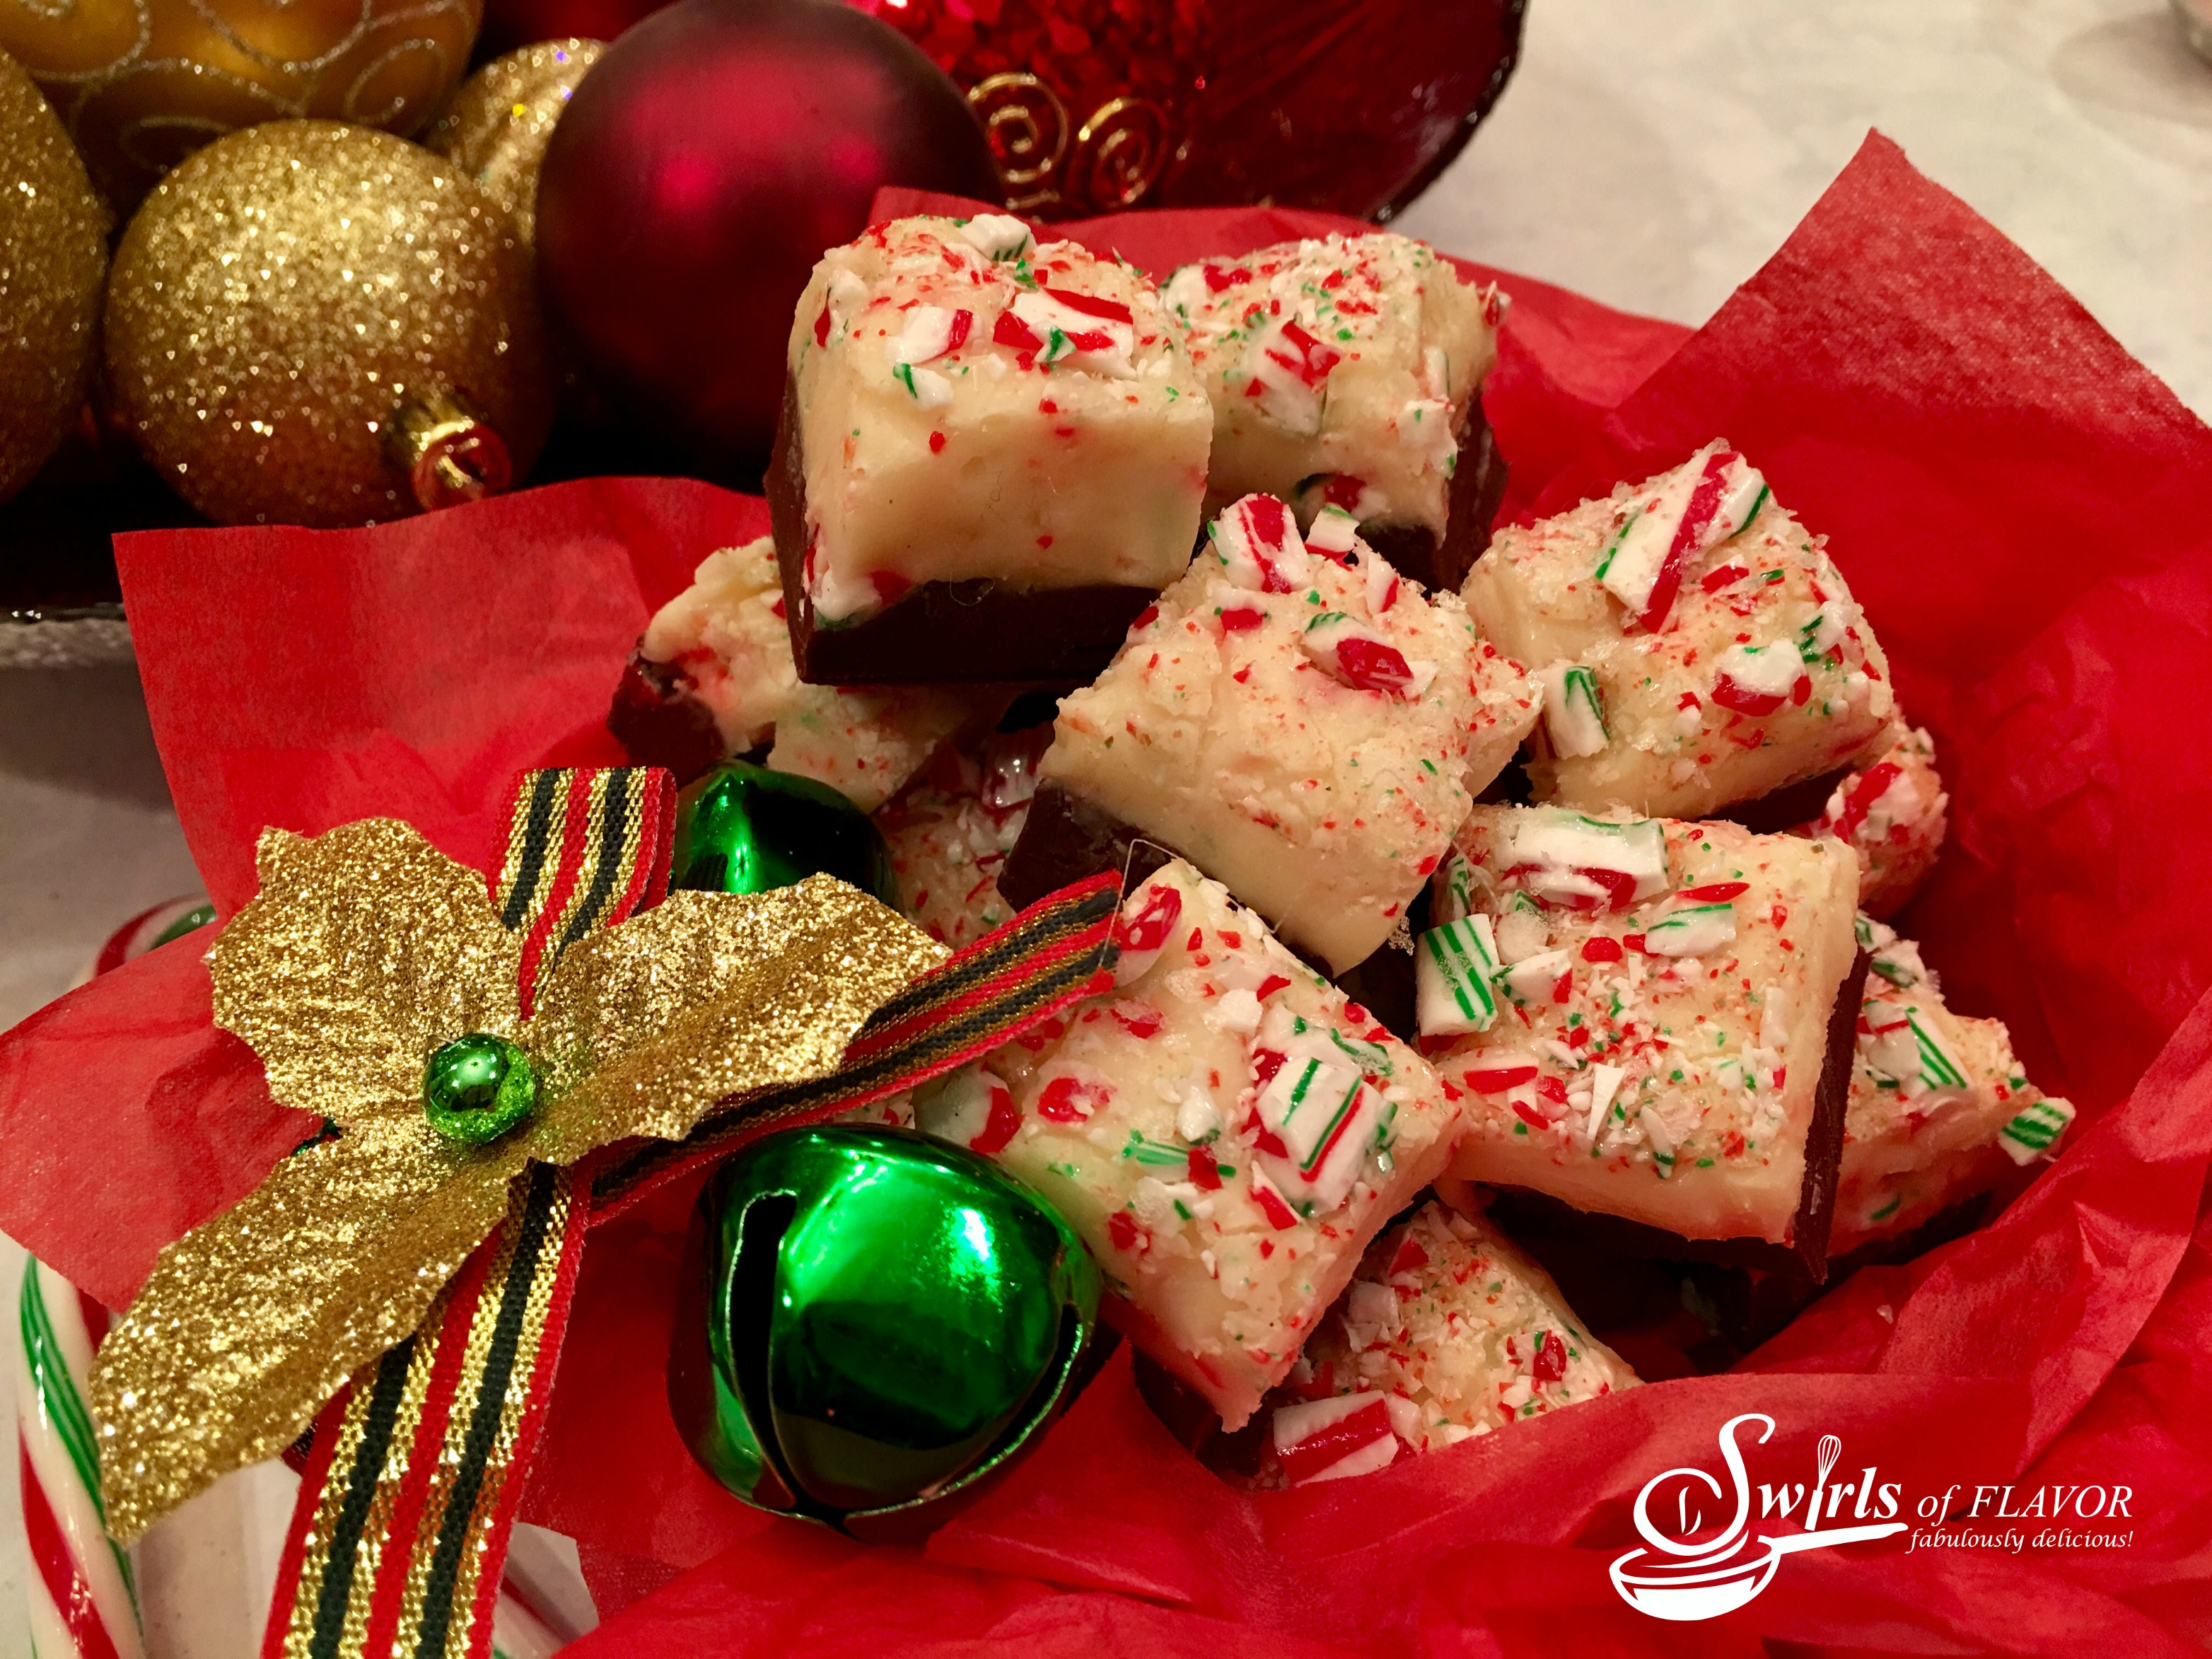 Candy Cane Fudge squares in gift box